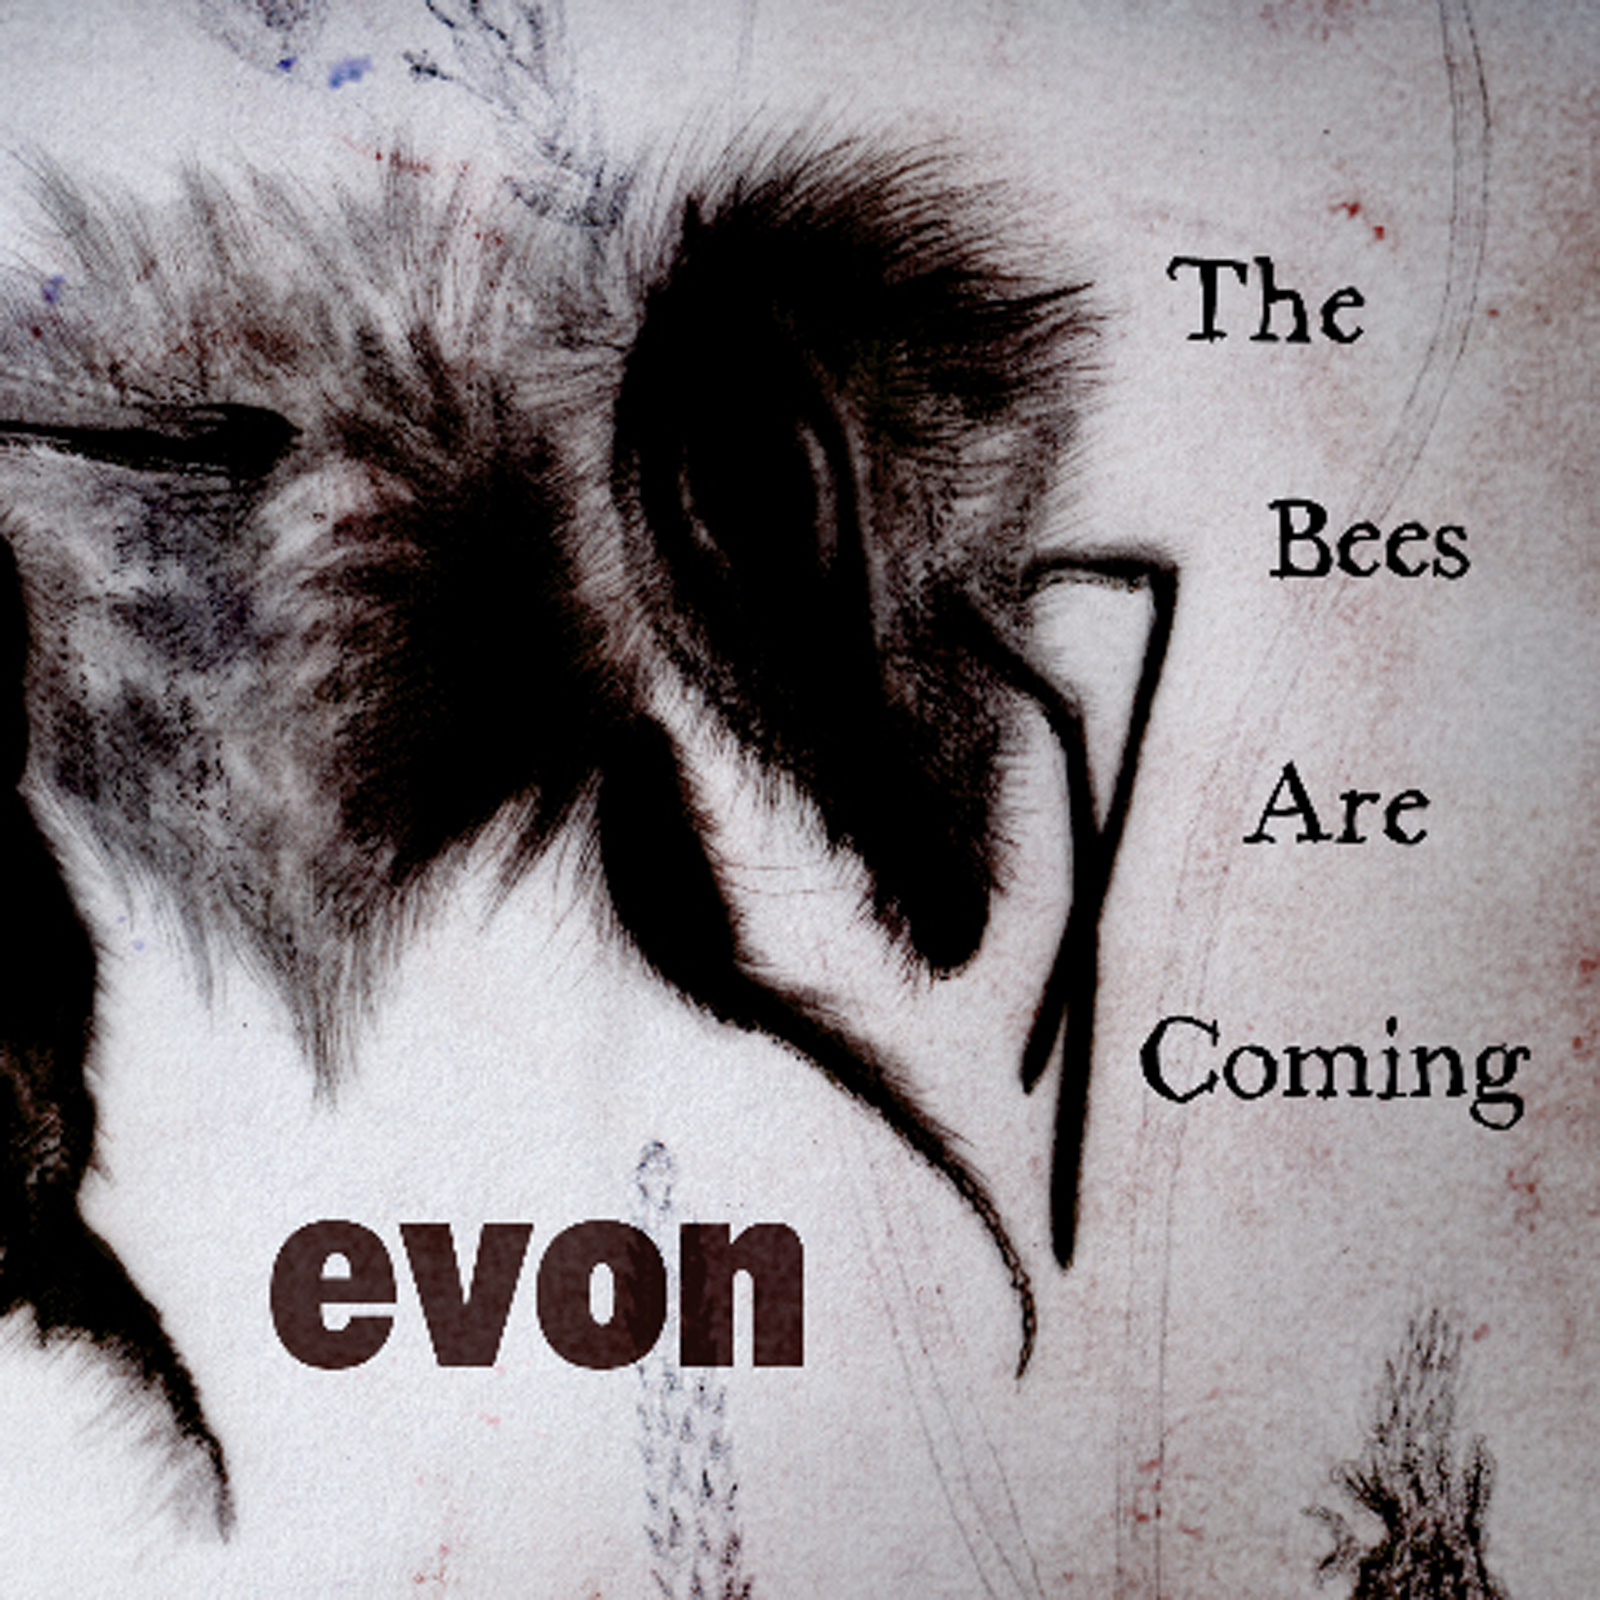 Evon - The Bees Are Coming